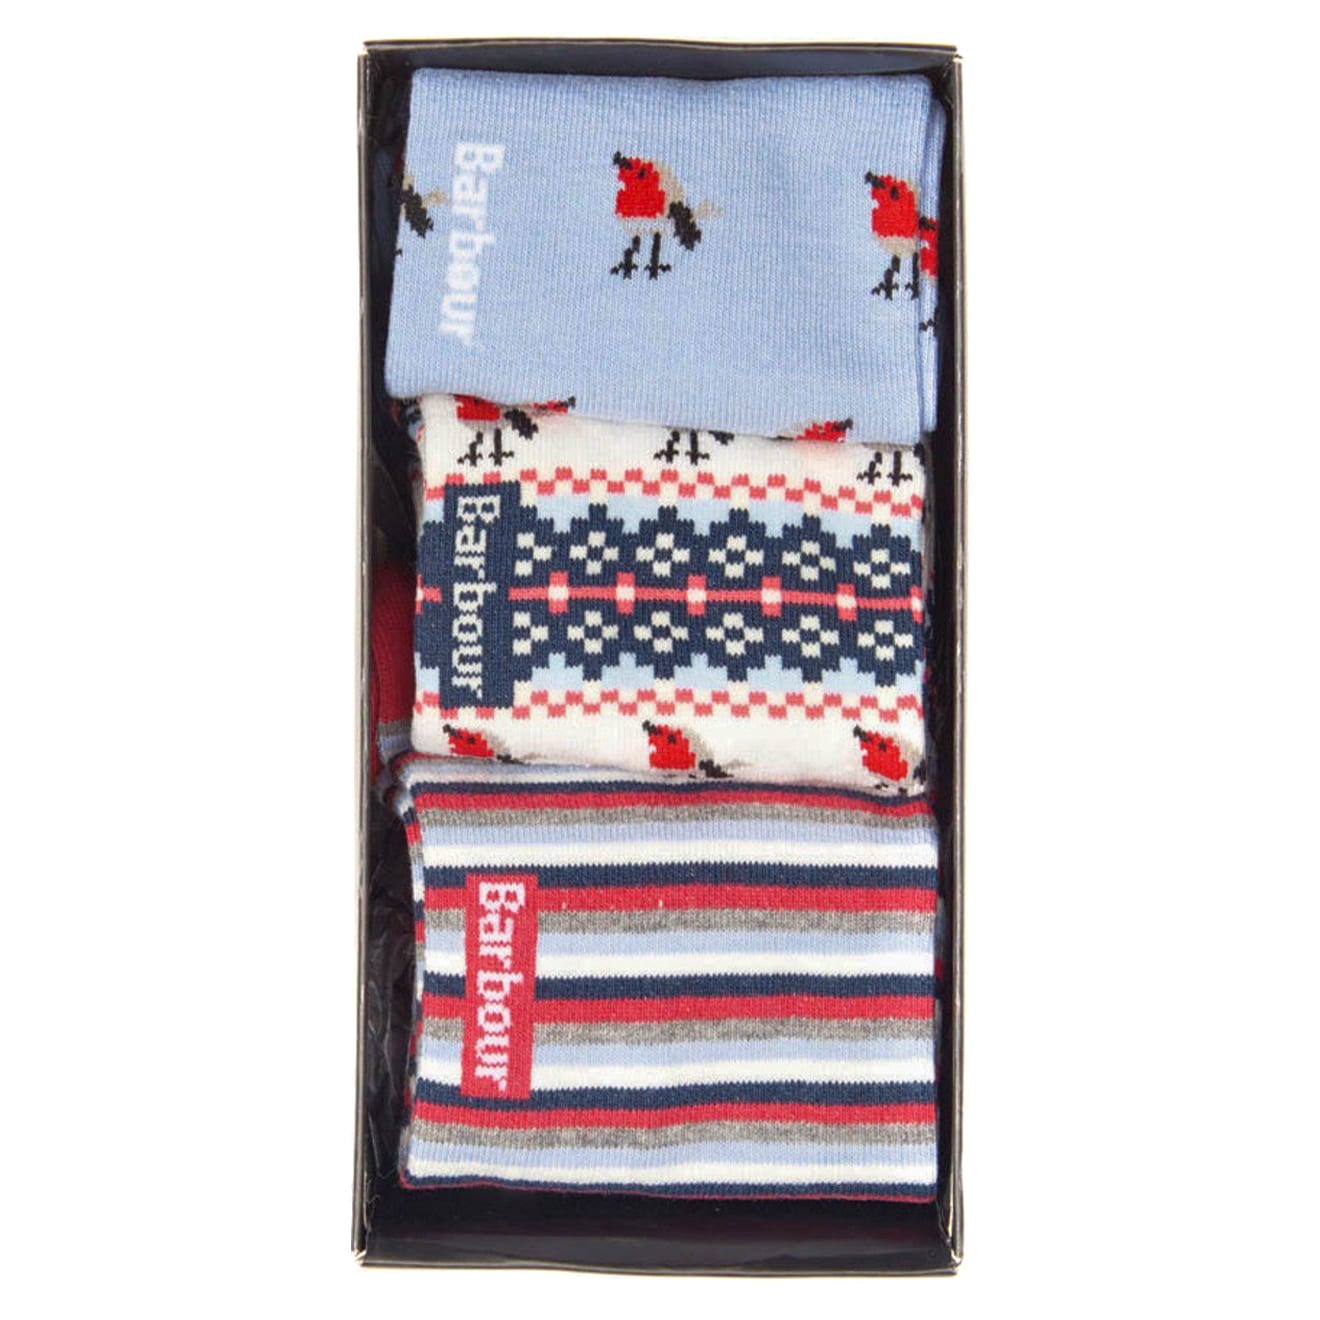 Barbour robin motif sock gift box set